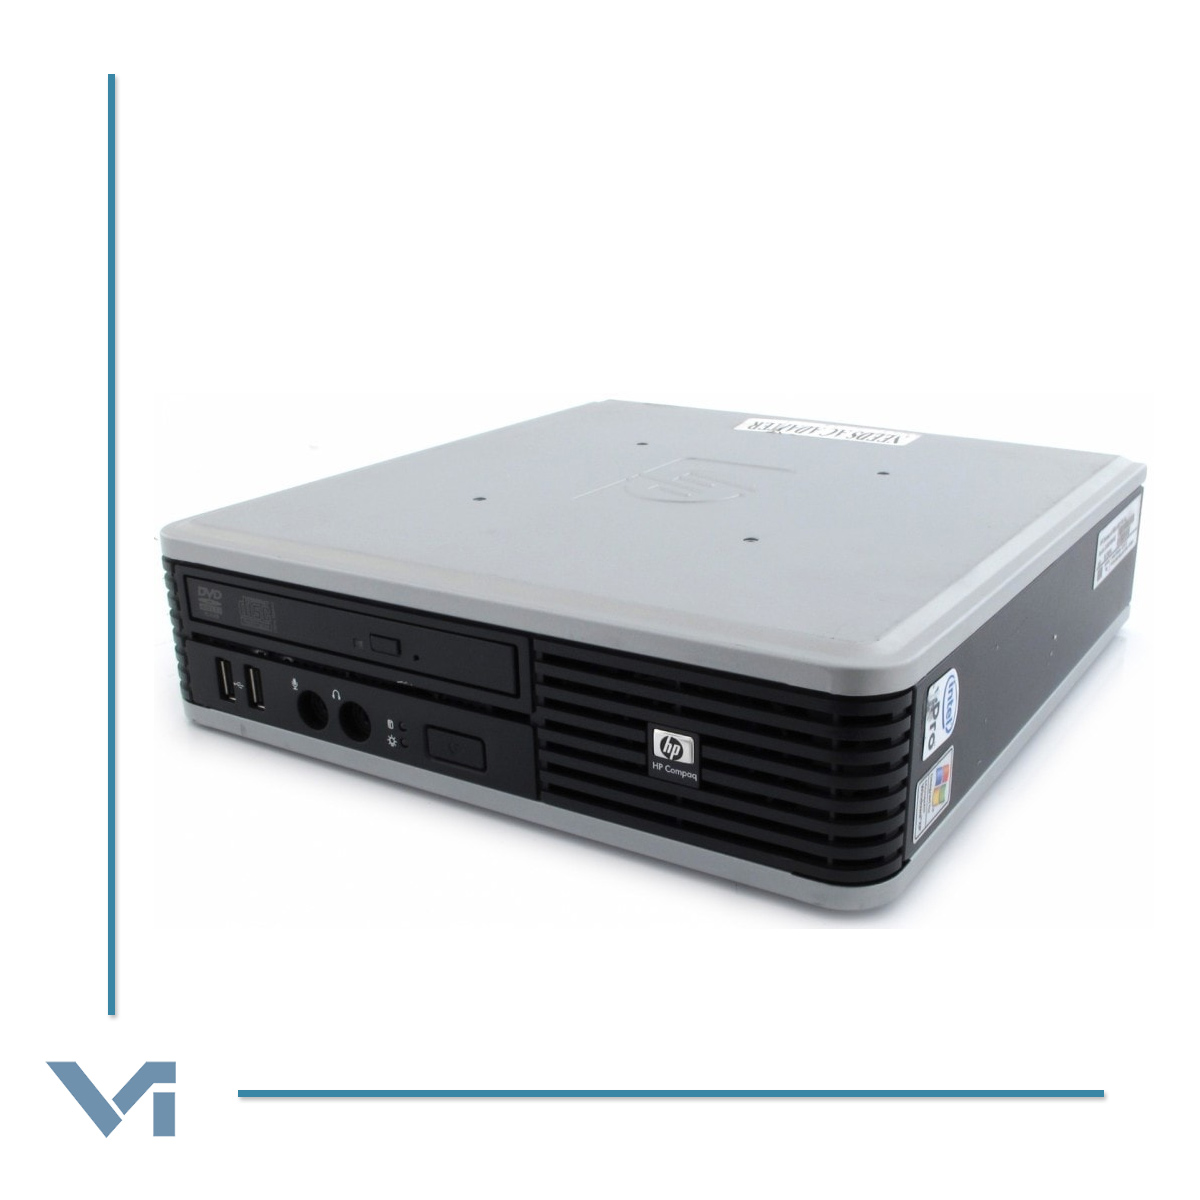 PC HP COMPAQ DC7800 GC762AV Mini PC - Intel Core 2 Duo E6550 2GB 160GB DVD/RW Windows 7 Professional -NOCOLOR- Ricondizionato